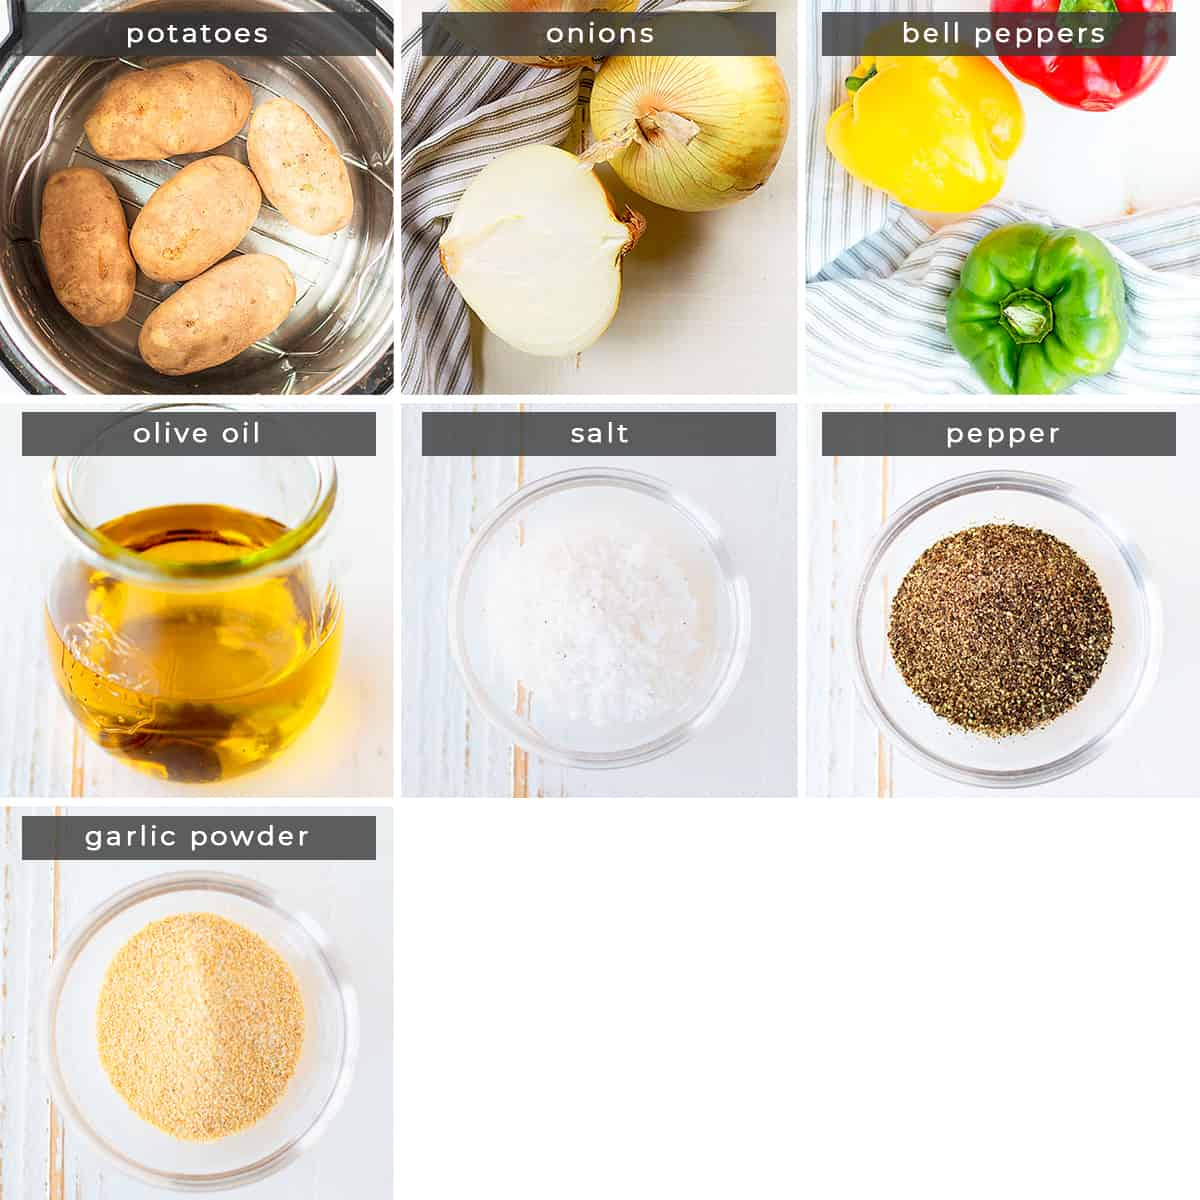 Image containing recipe ingredients potatoes, onions, bell peppers, olive oil, salt, pepper, garlic powder.